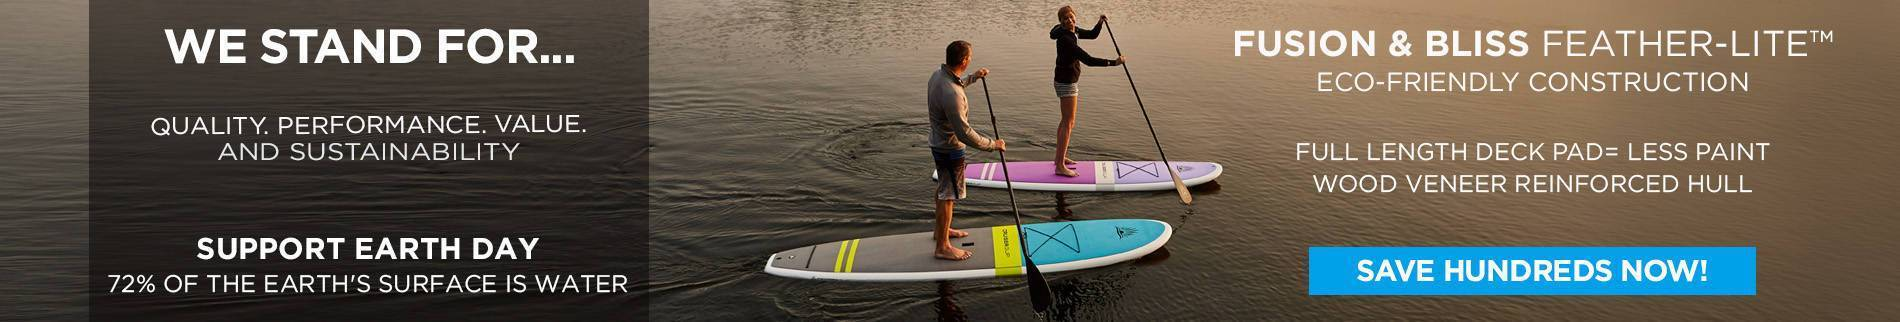 Full Length Deck Pad Paddle Boards SUPer Sale